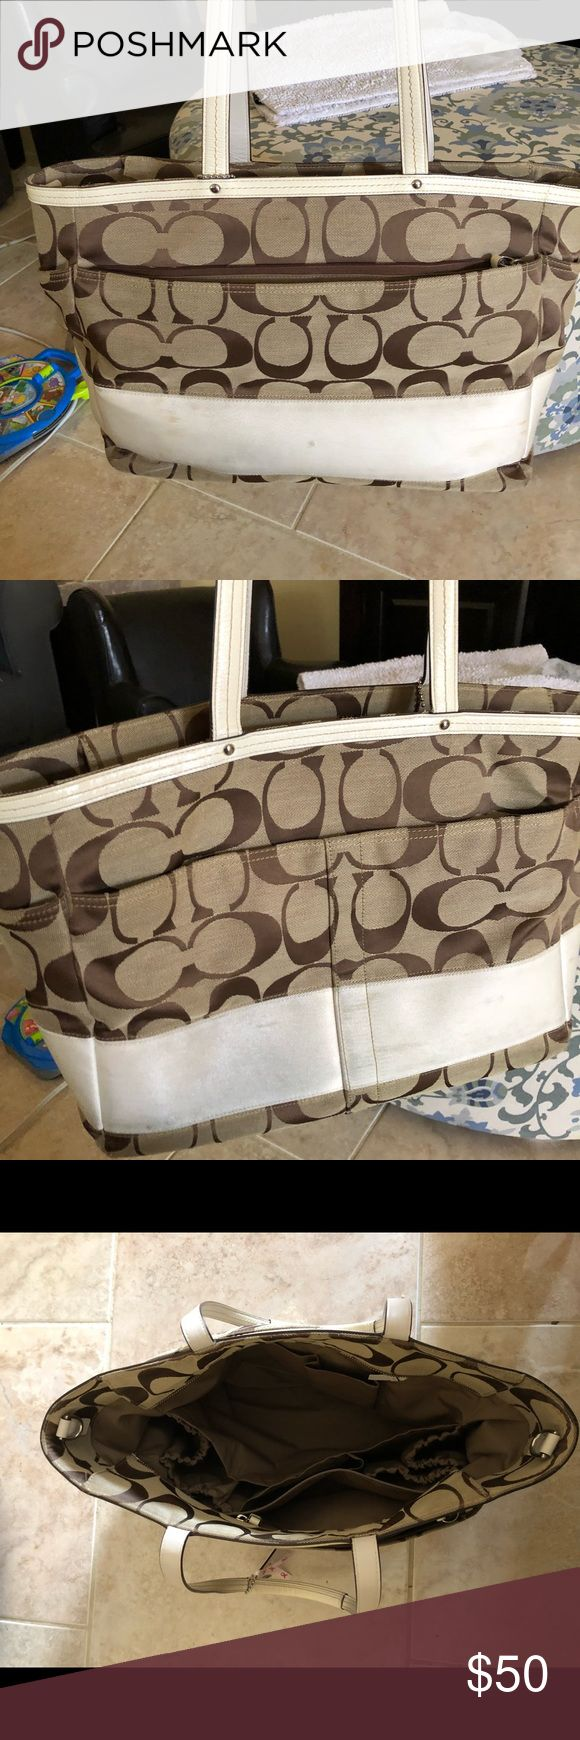 Coach Diaper Bag Coach diaper bag used as a work bag... no changing pad included. Coach Bags Baby Bags